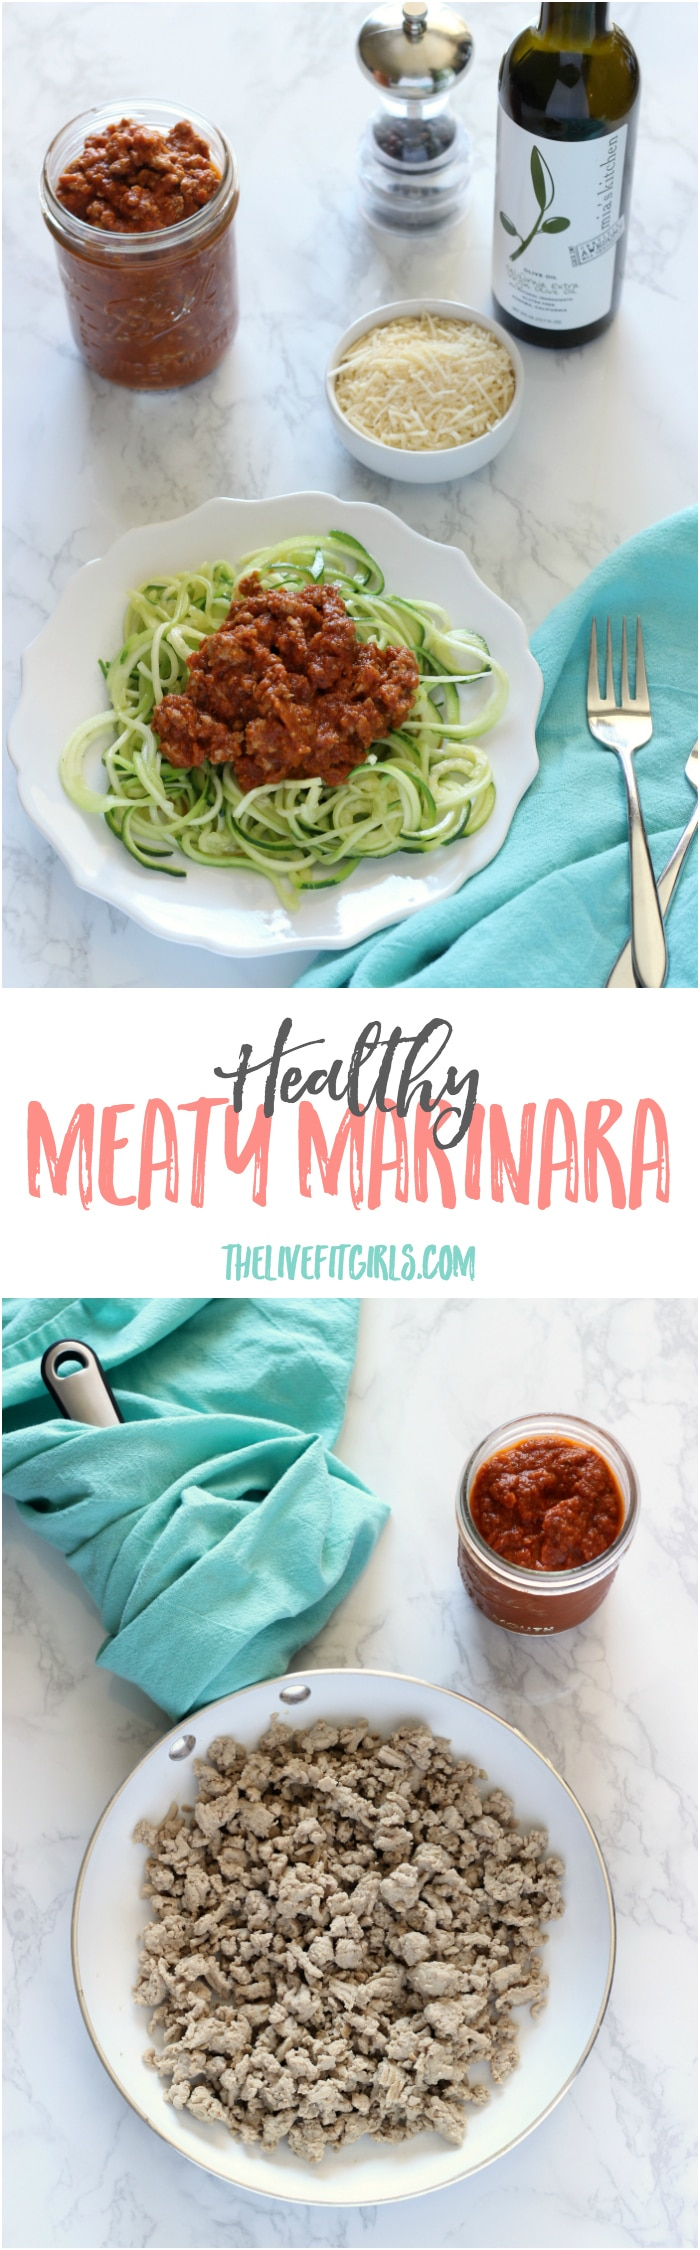 Meaty Marinara Pin